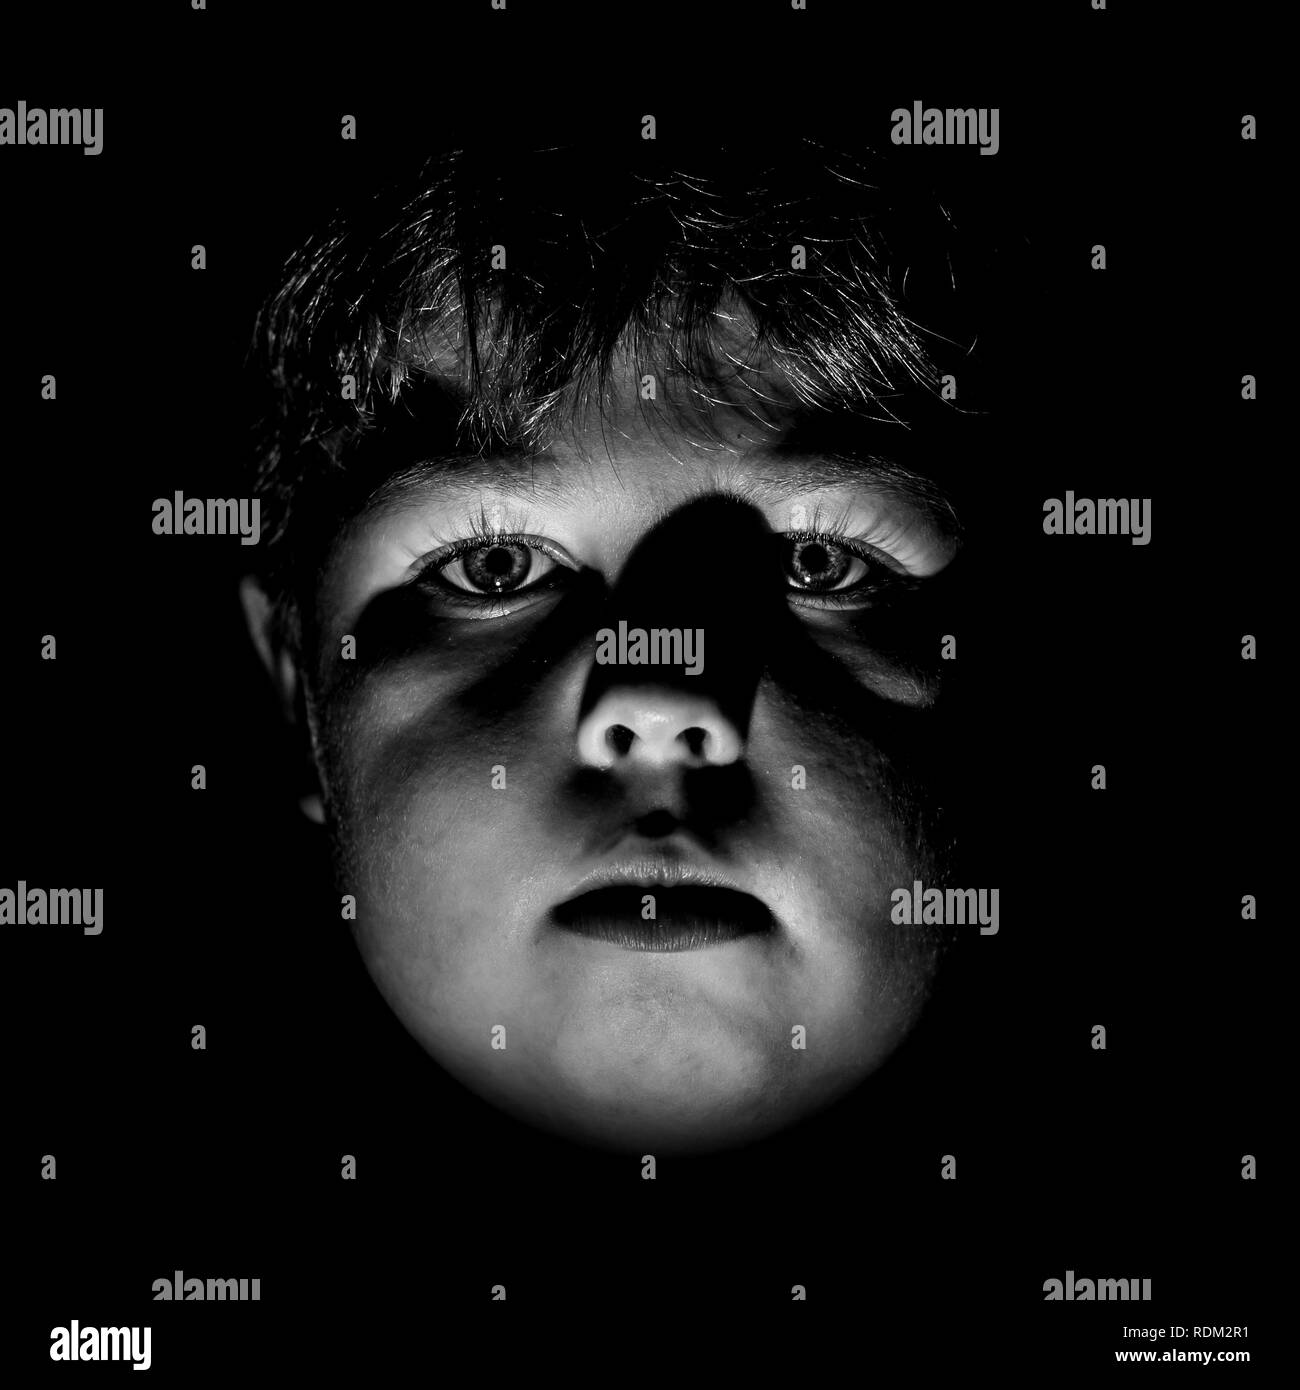 Portrait of calm young caucasian boy. Black and white shot, low key lighting. Isolated on black. - Stock Image